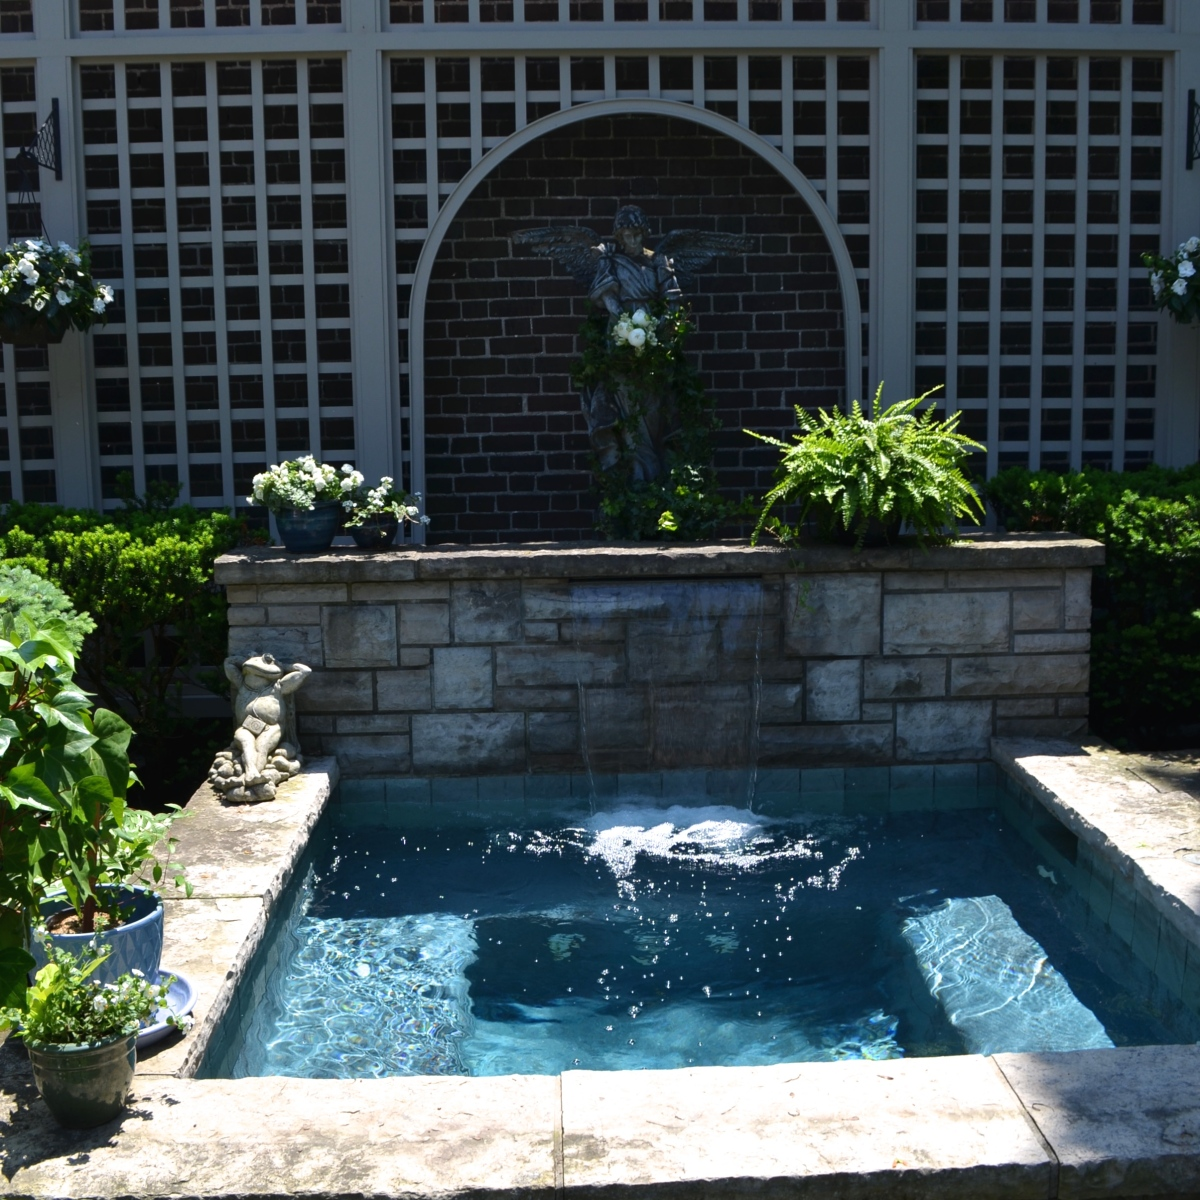 A plunge pool can work as a garden focal point.